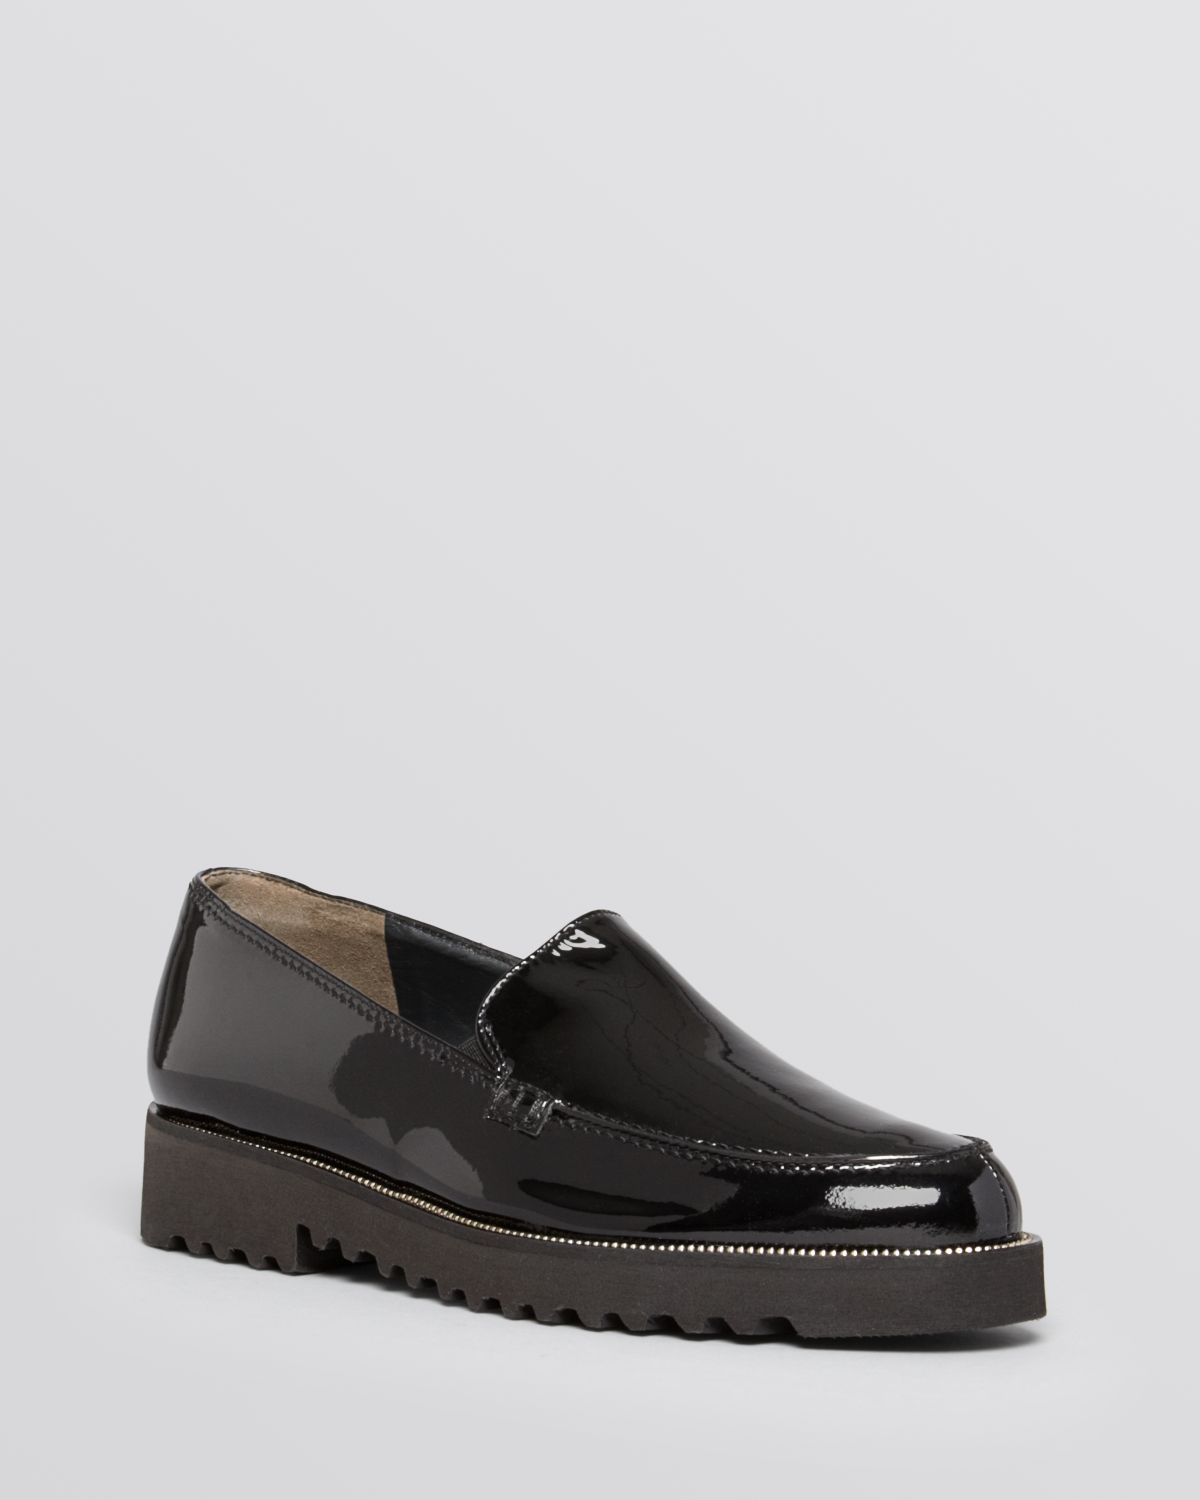 paul green ariana patent loafer flats in black black patent lyst. Black Bedroom Furniture Sets. Home Design Ideas